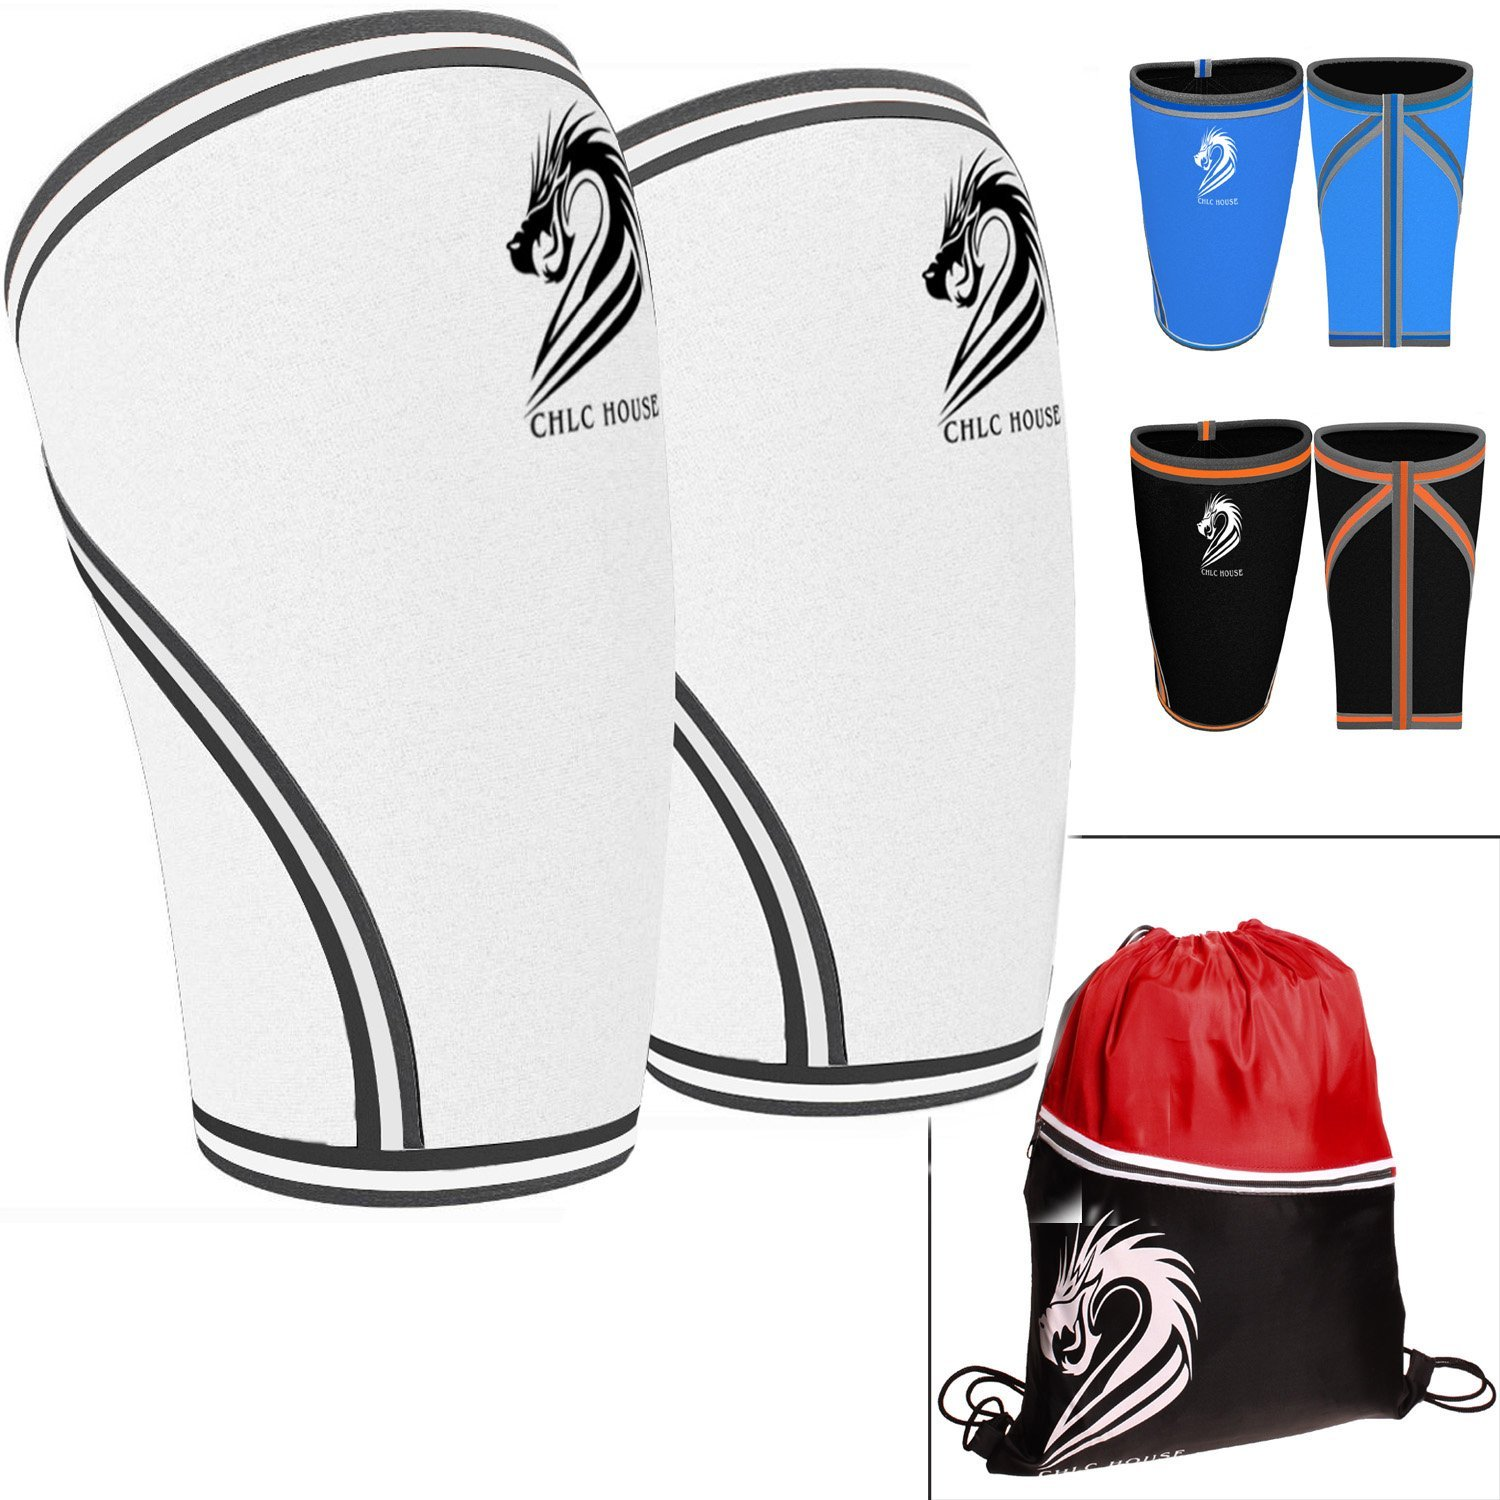 30da5761a3 Get Quotations · CHLC HOUSE Knee Sleeves (1 Pair) Free Gym Bag - Squat Knee  Support &